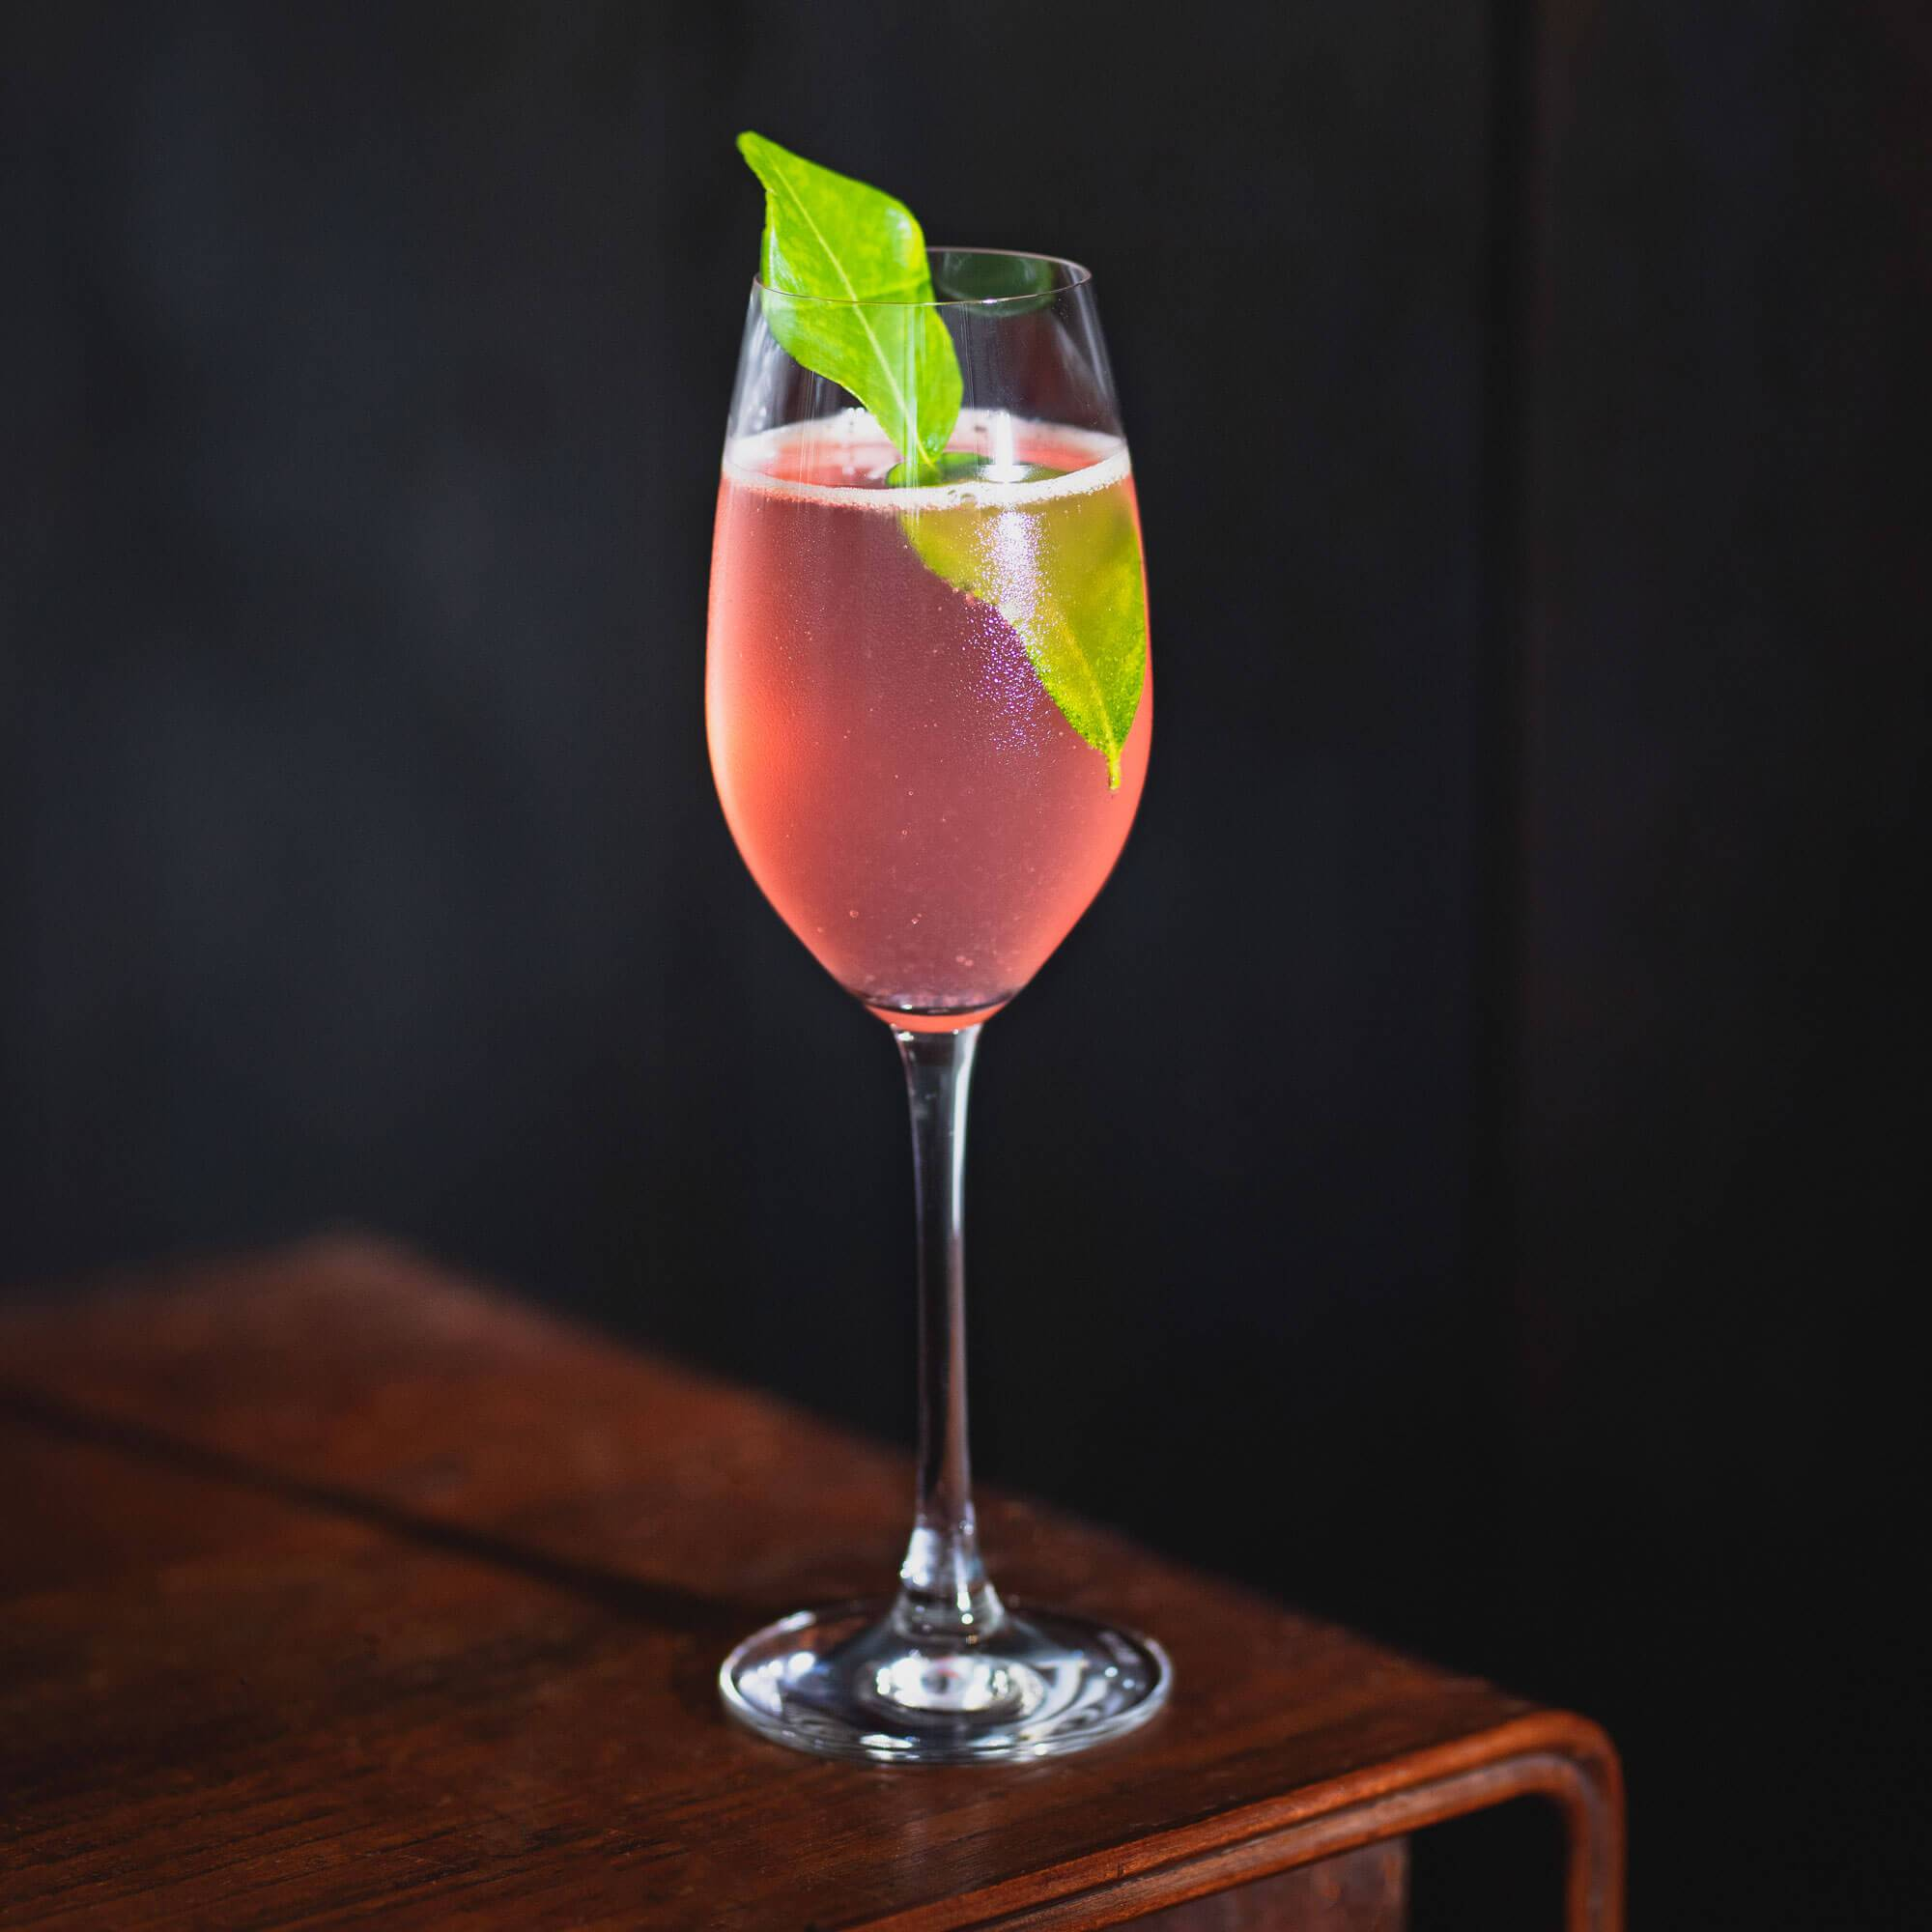 Pomme Fizz Cocktail by East Imperial